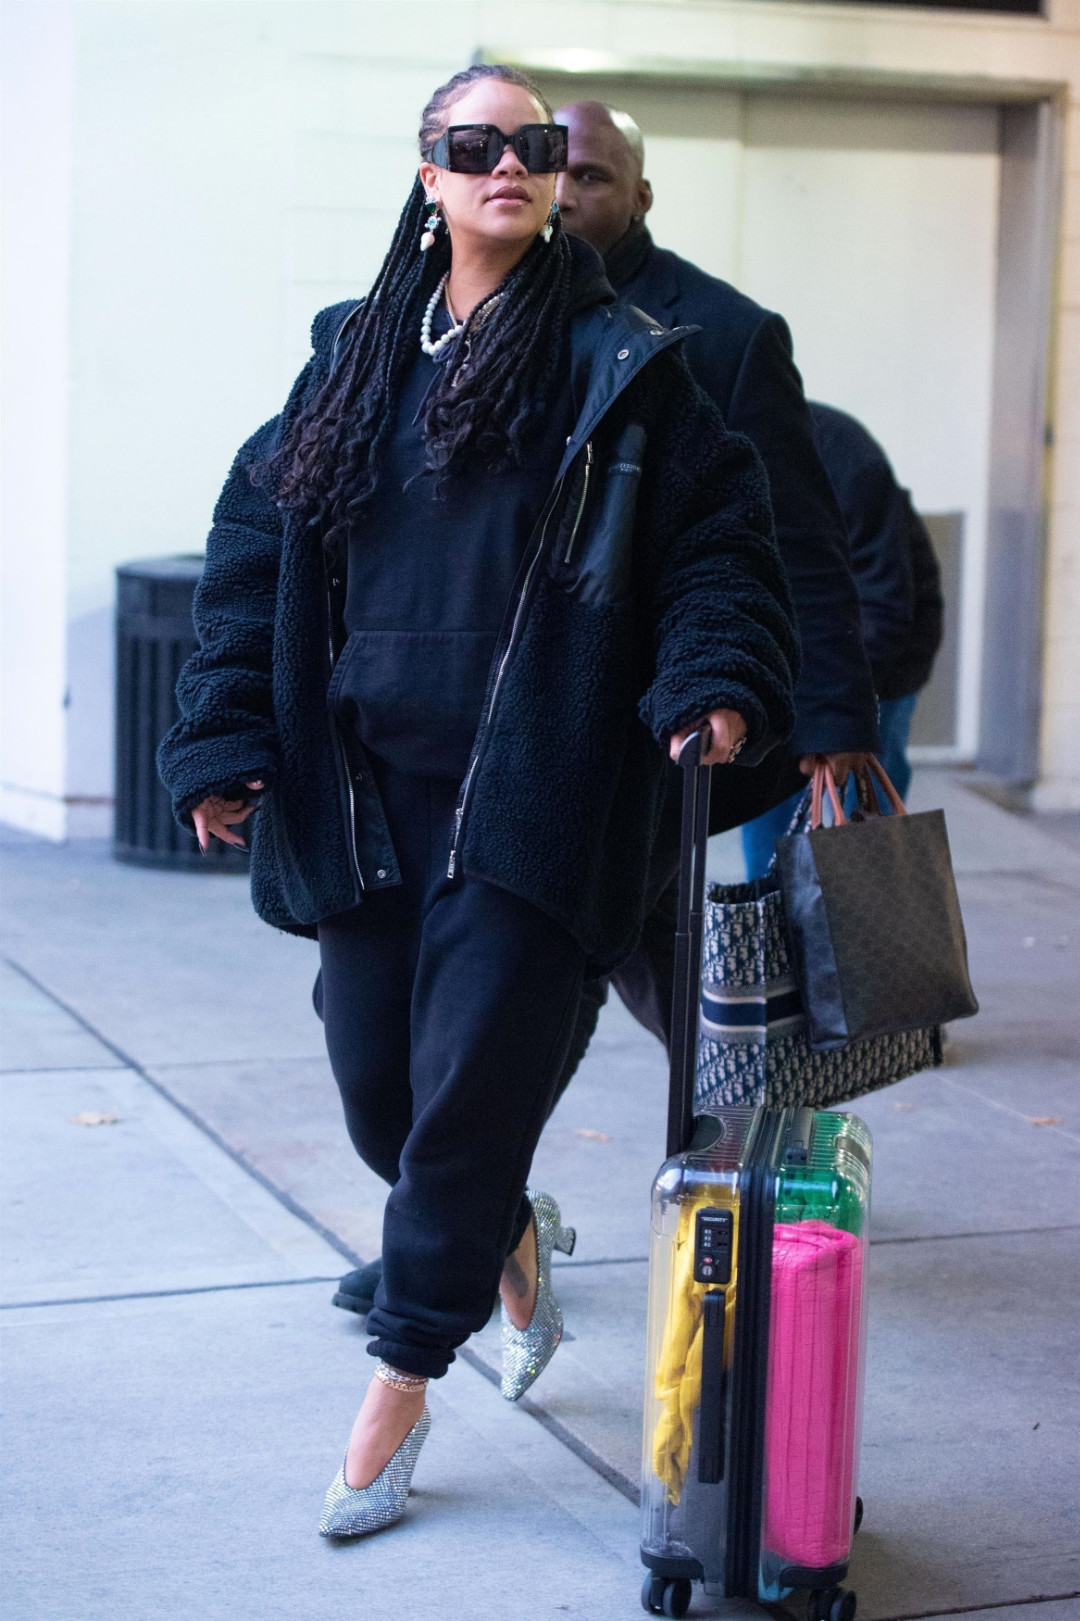 Rihanna crystal pumps airport Bottega Veneta Almond shoes and The Pouch clutch, Celine square sunglasses and Vertical Cabas Tote, Jiwinaia 69 pearl drop earrings, Mastermind reversible fleece jacket, Rimowa x Off-White clear suitcase, Dior book tote, Prada x Adidas white bowling bag